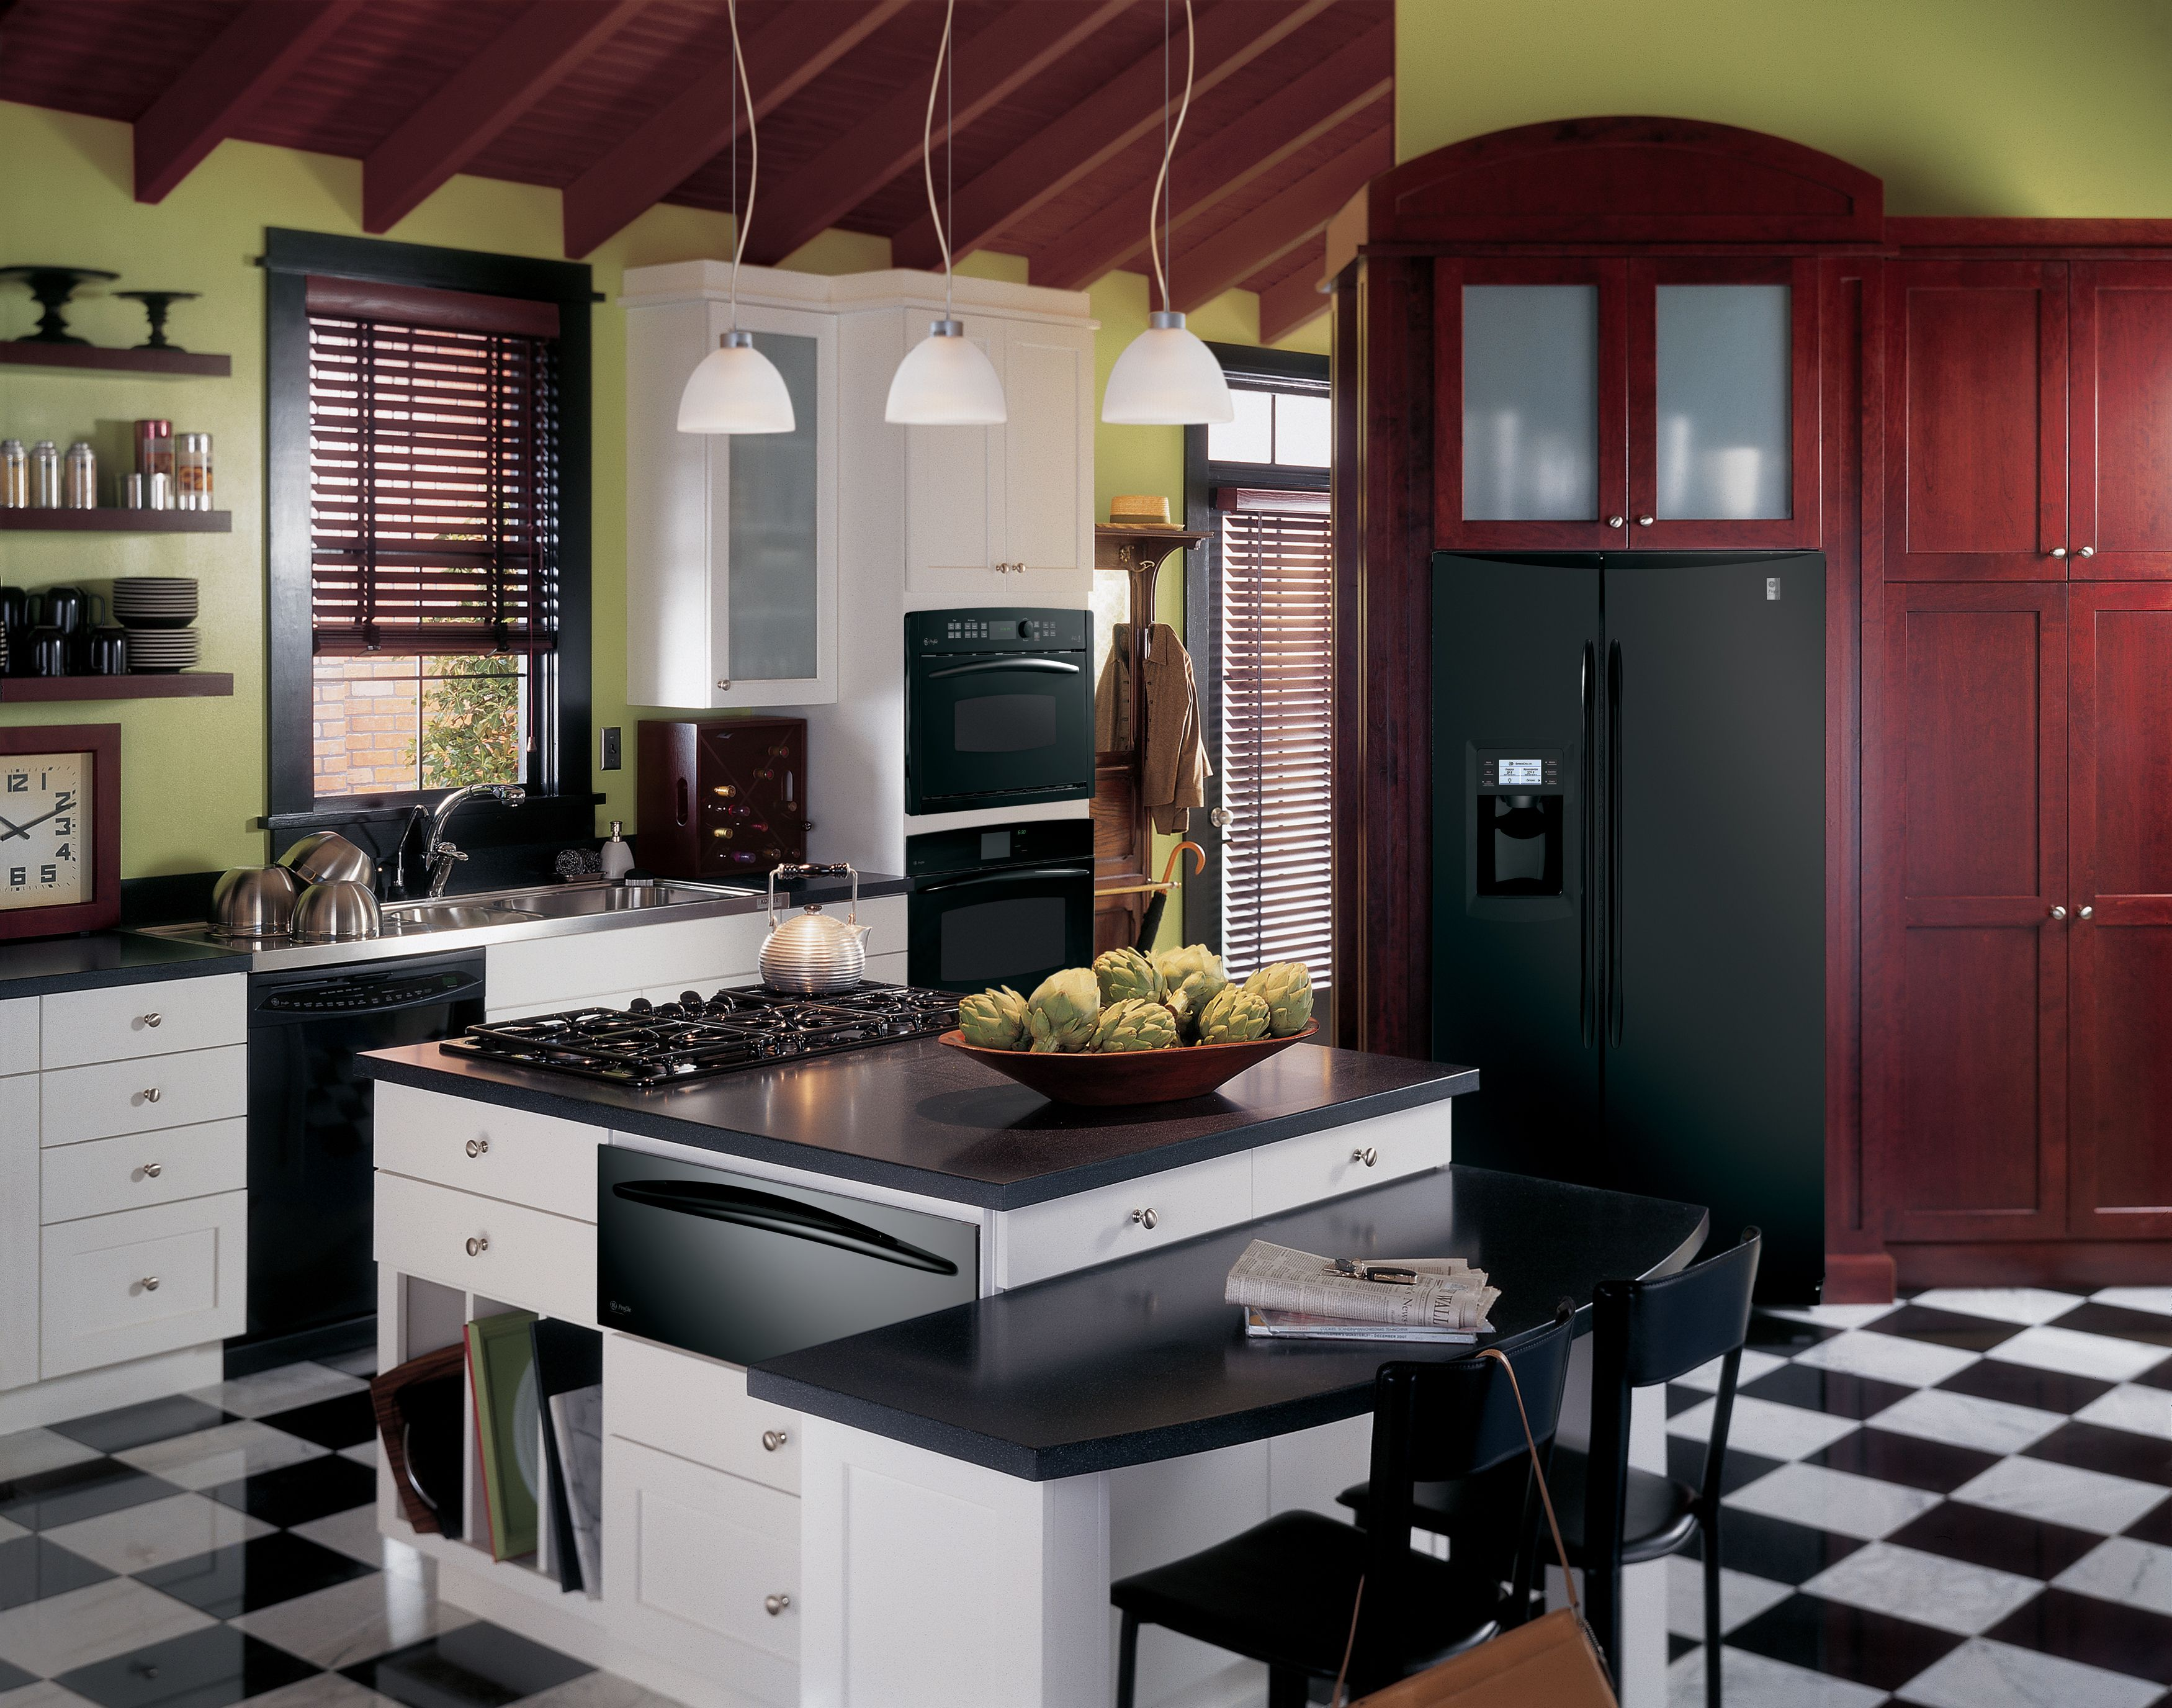 GE Profile kitchen with black appliances, green walls